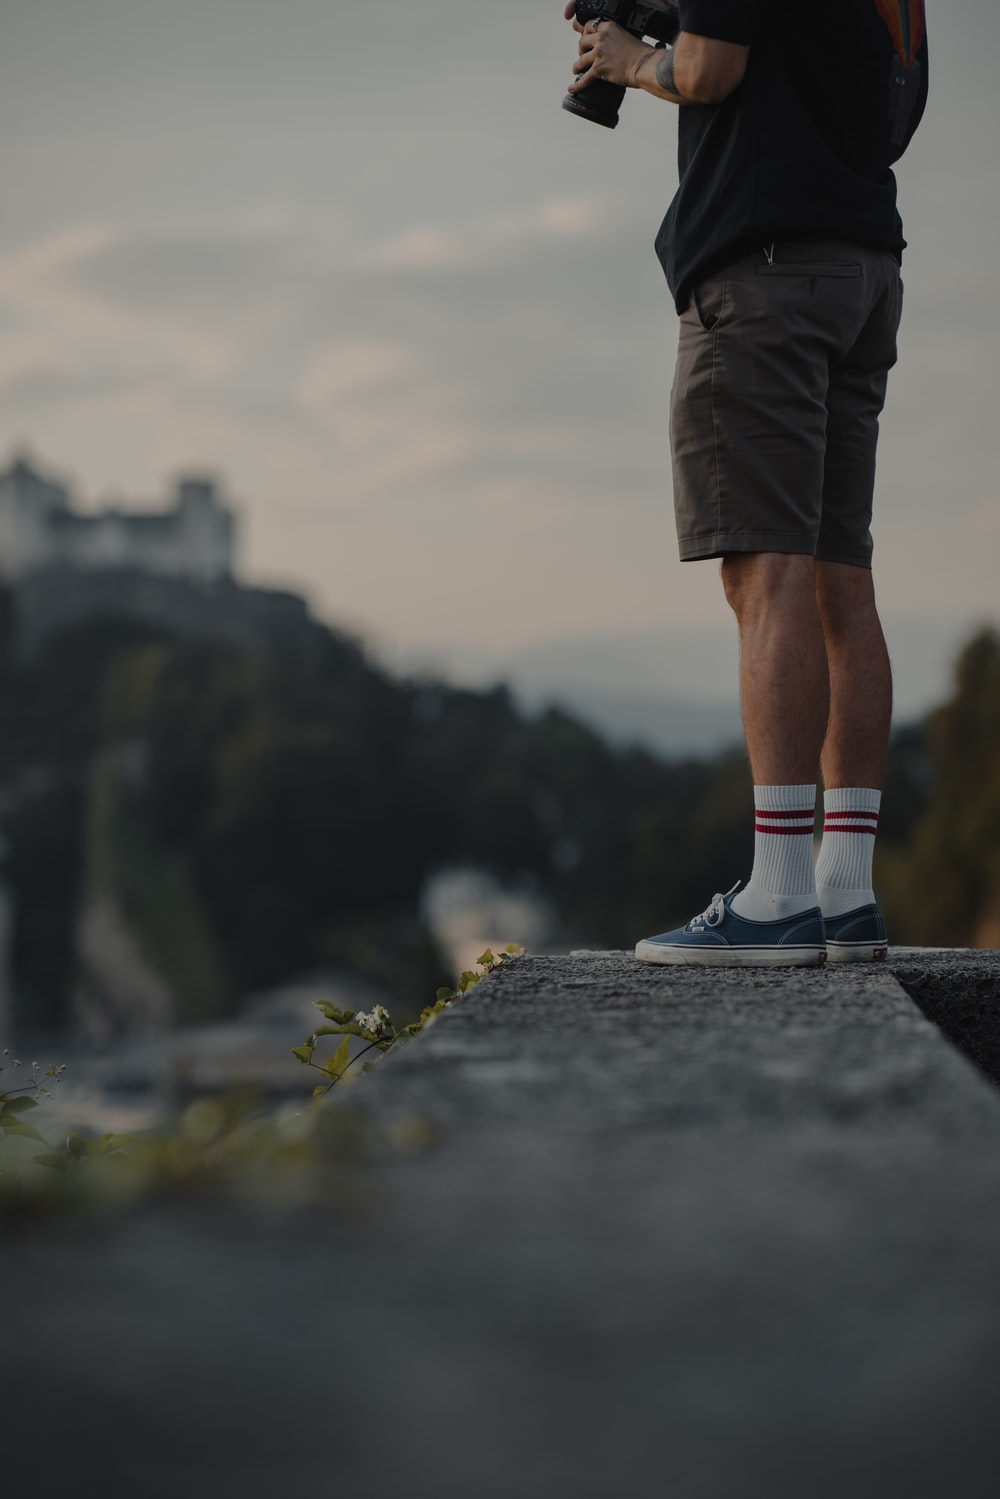 person in black shorts and white and black nike sneakers standing on gray concrete pavement during